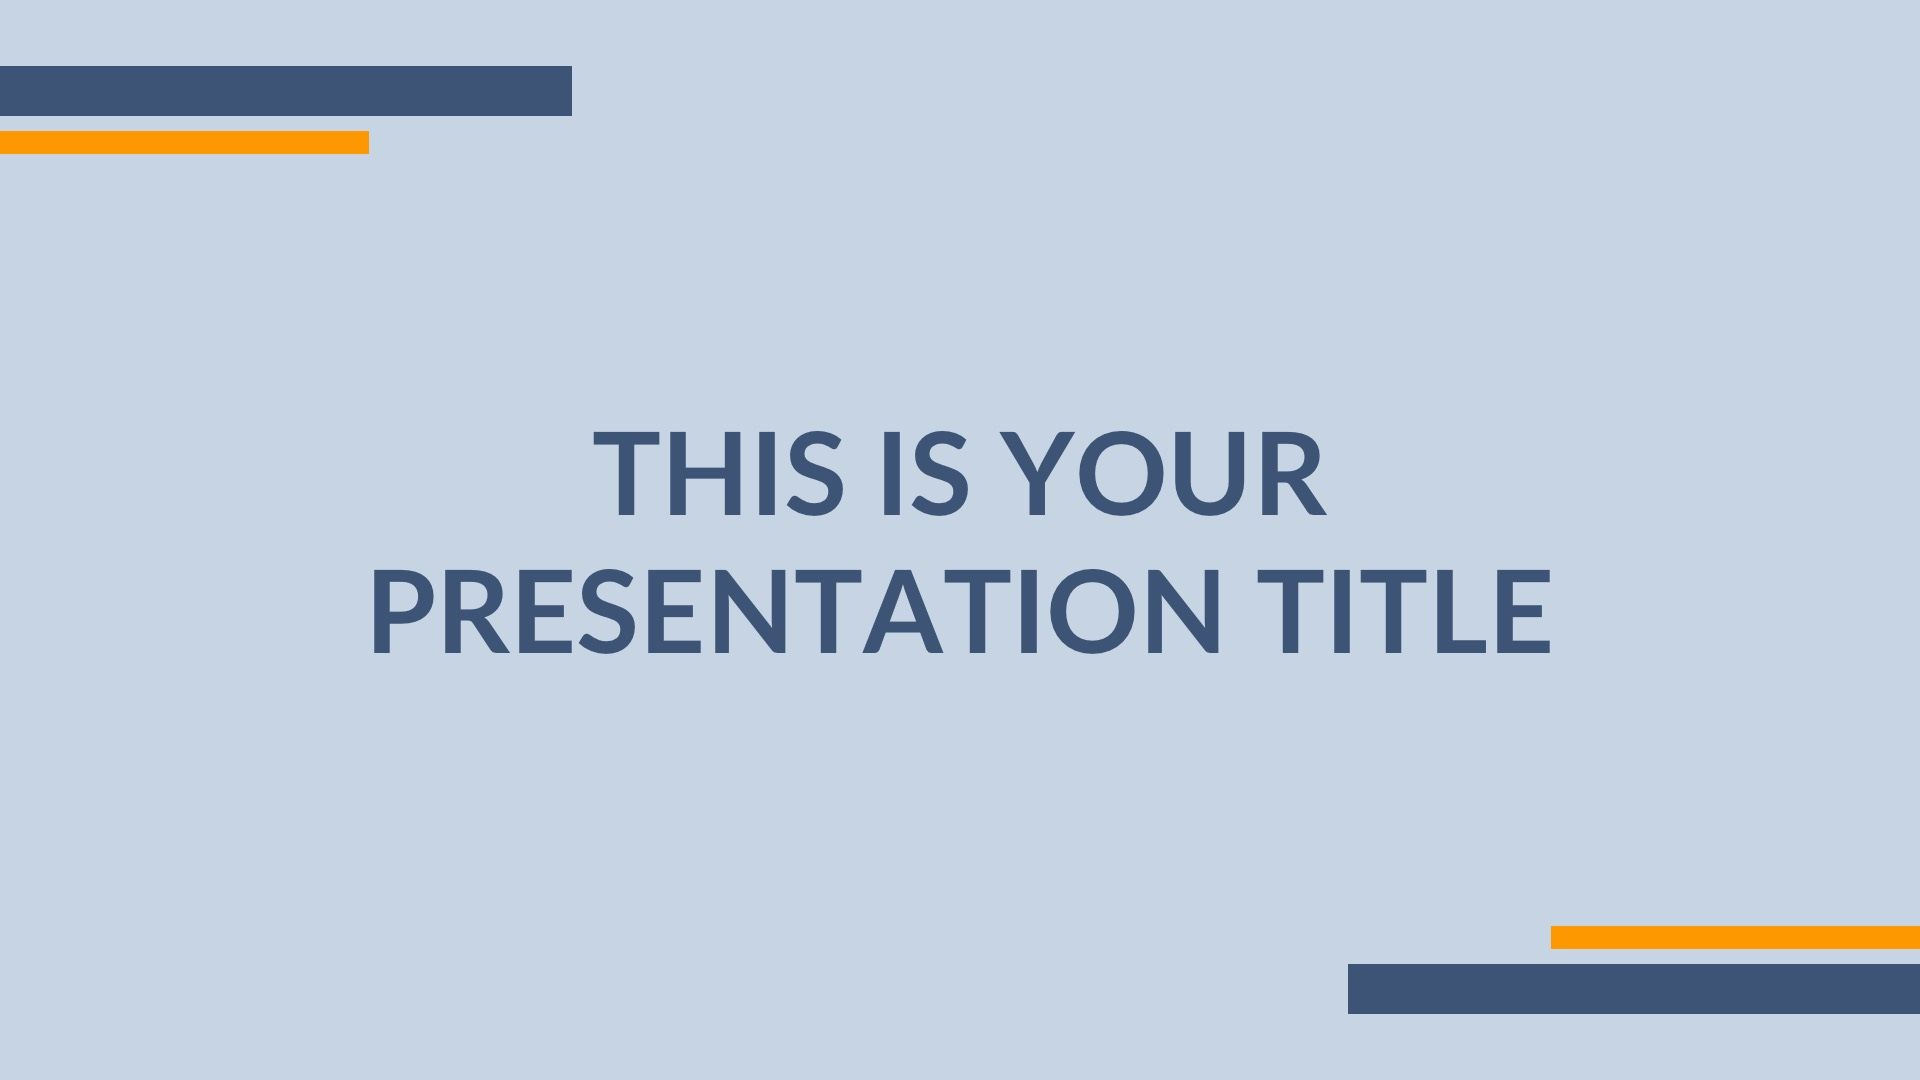 005 Impressive Simple Ppt Template Free Download For Project Presentation Idea Full